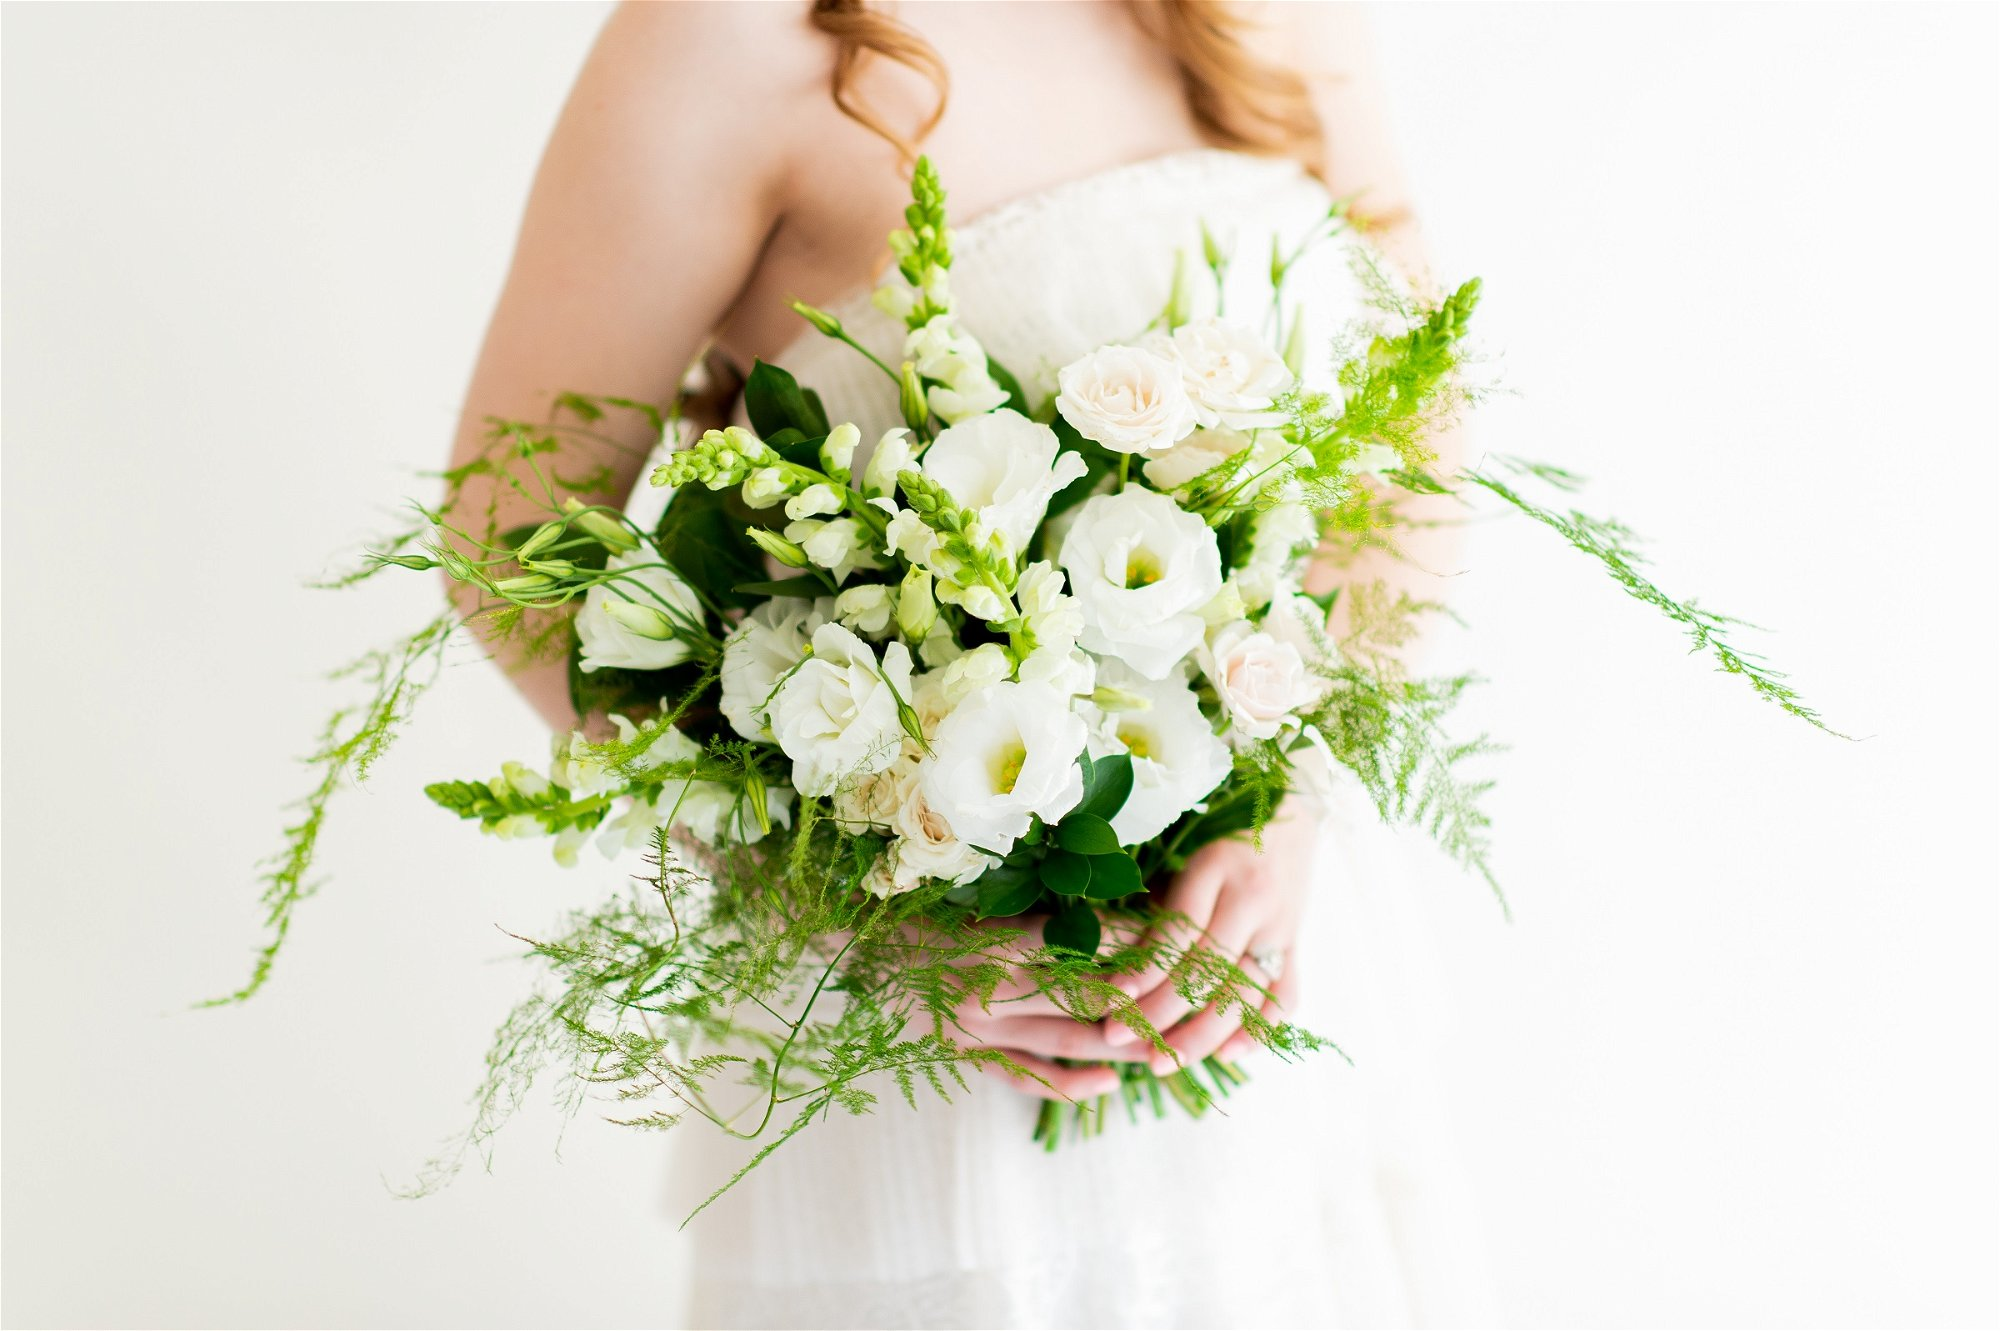 flower moxie, diy bridal bouquet, plumosa bouquet, whimsical bouquet, lisianthus bouquet, cream and green bouquet, fern bouquet